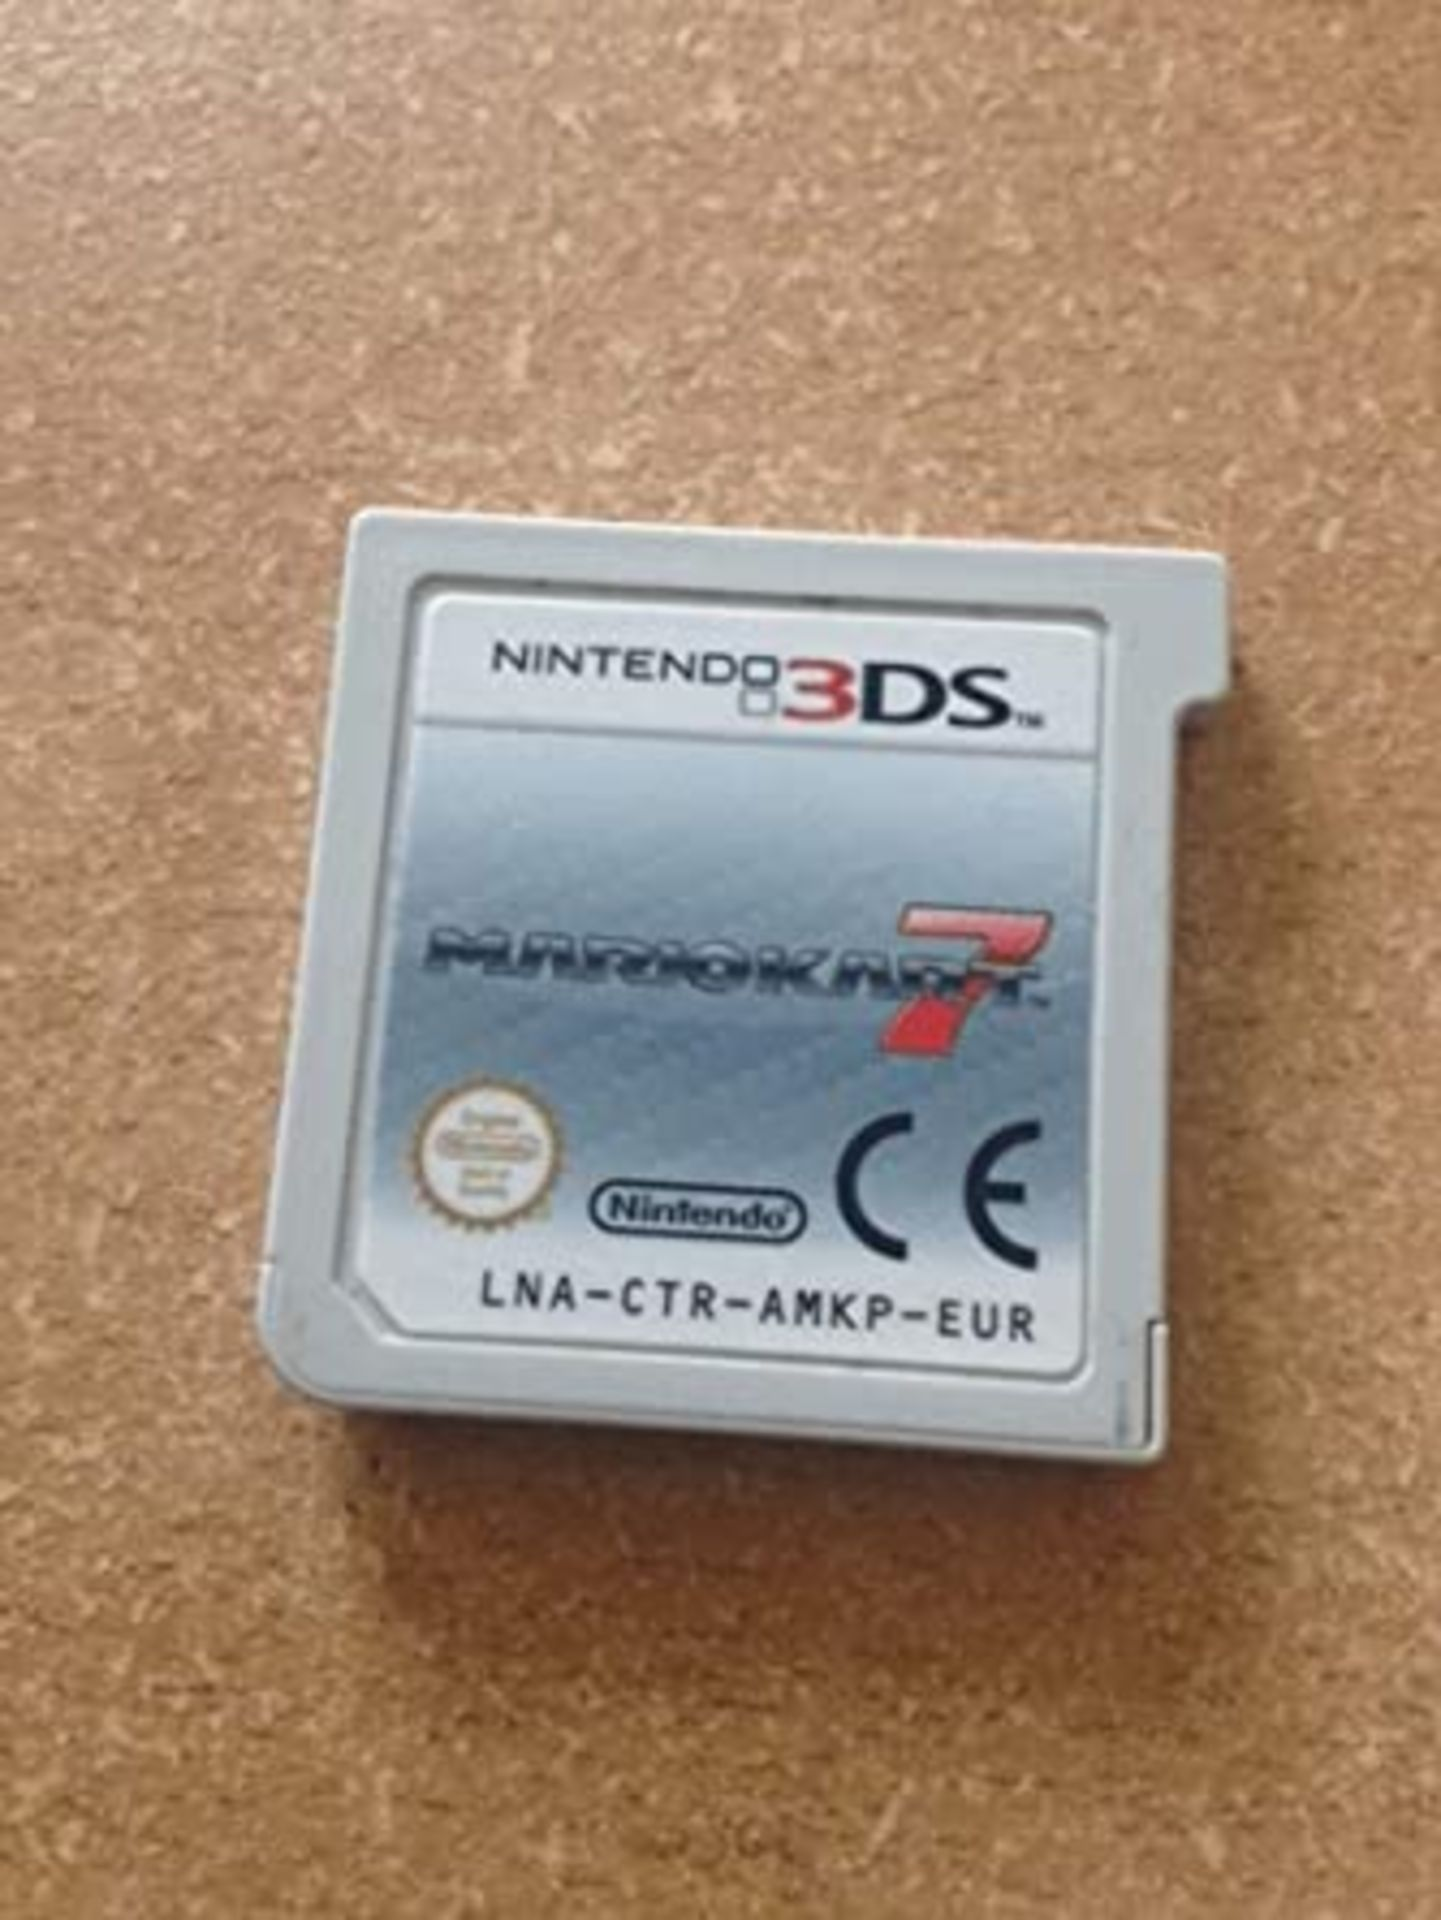 Lot 522 - NINTENDO 3DS XL WHITE HANDHELD CONSOLE, C/W MARIO KART 7, IN WORKING ORDER WITH CHARGER *NO VAT*